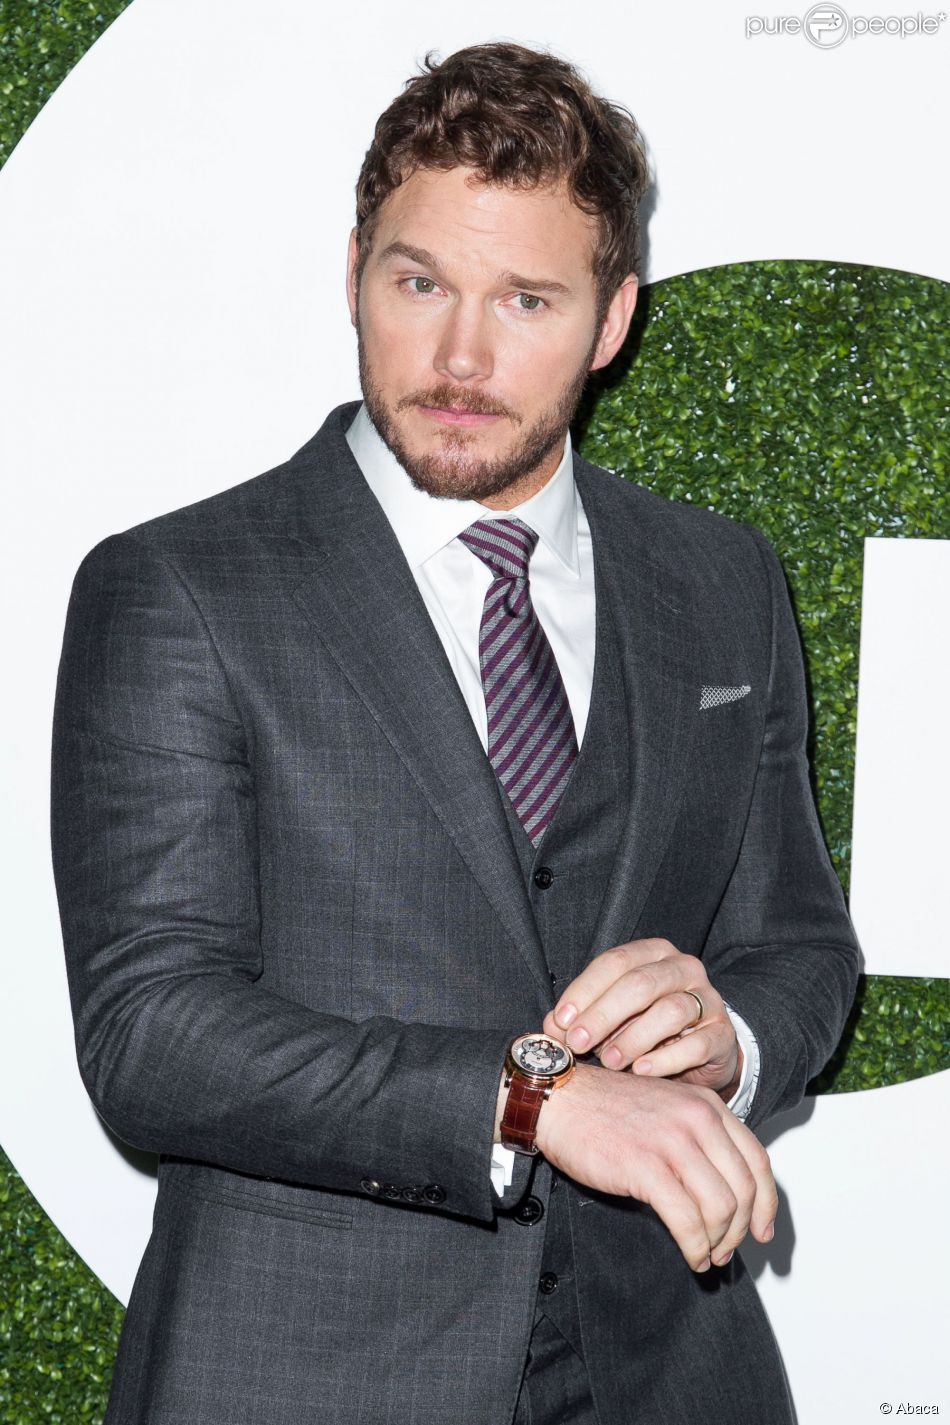 Chris Pratt attending 2014 GQ Annual Men of the Year Party held at Chateau Marmont, West Hollywood, CA, USA, on December 04, 2014. Photo by John Salangsang/BFAnyc/ddp USA/ABACAPRESS.COM05/12/2014 - Los Angeles